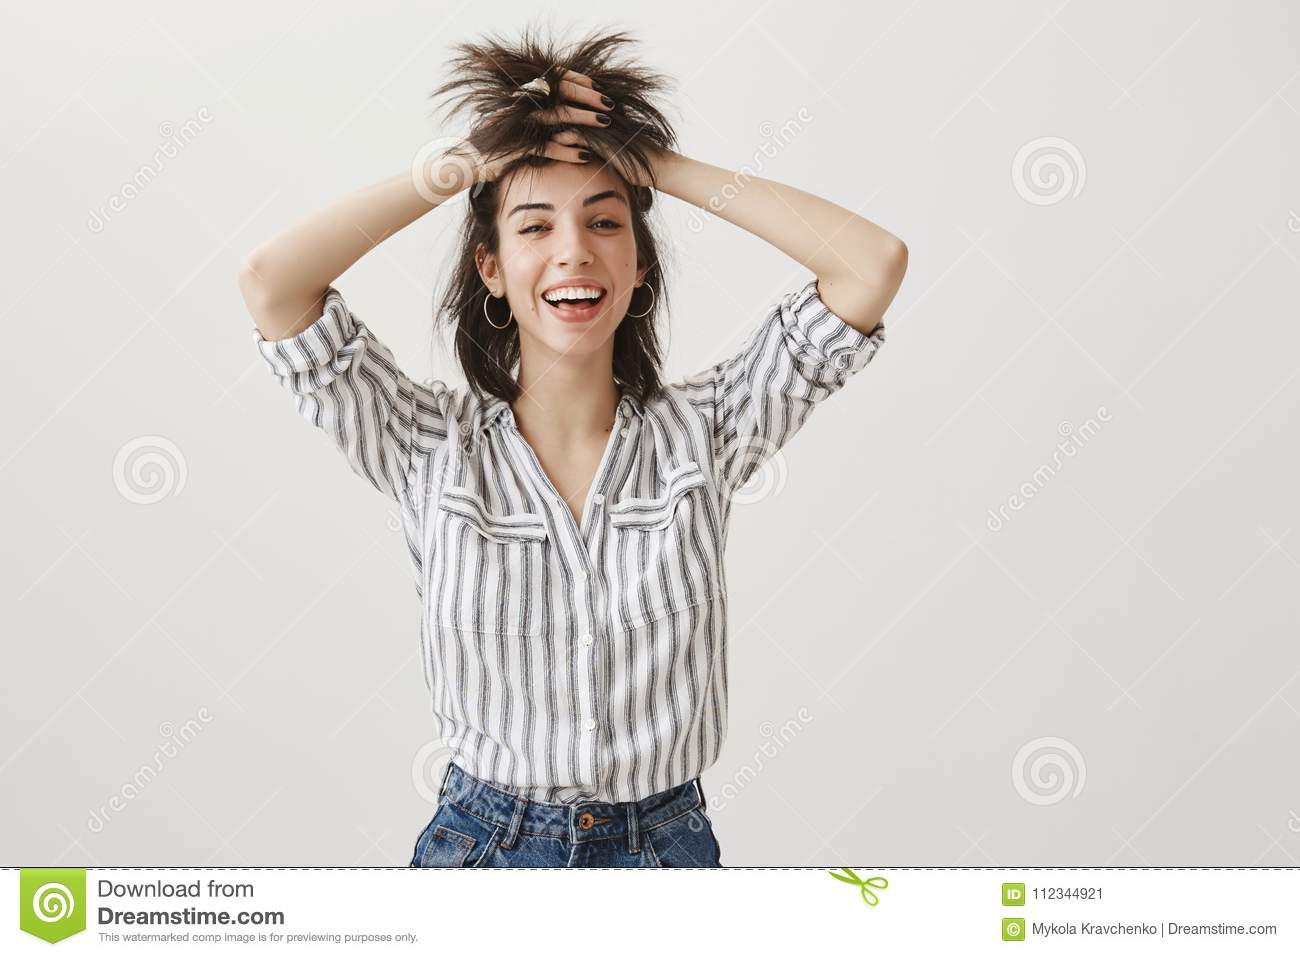 Punks not dead. Portrait of funny attractive woman with sense of humour lifting up hair with hands, looking like rock n